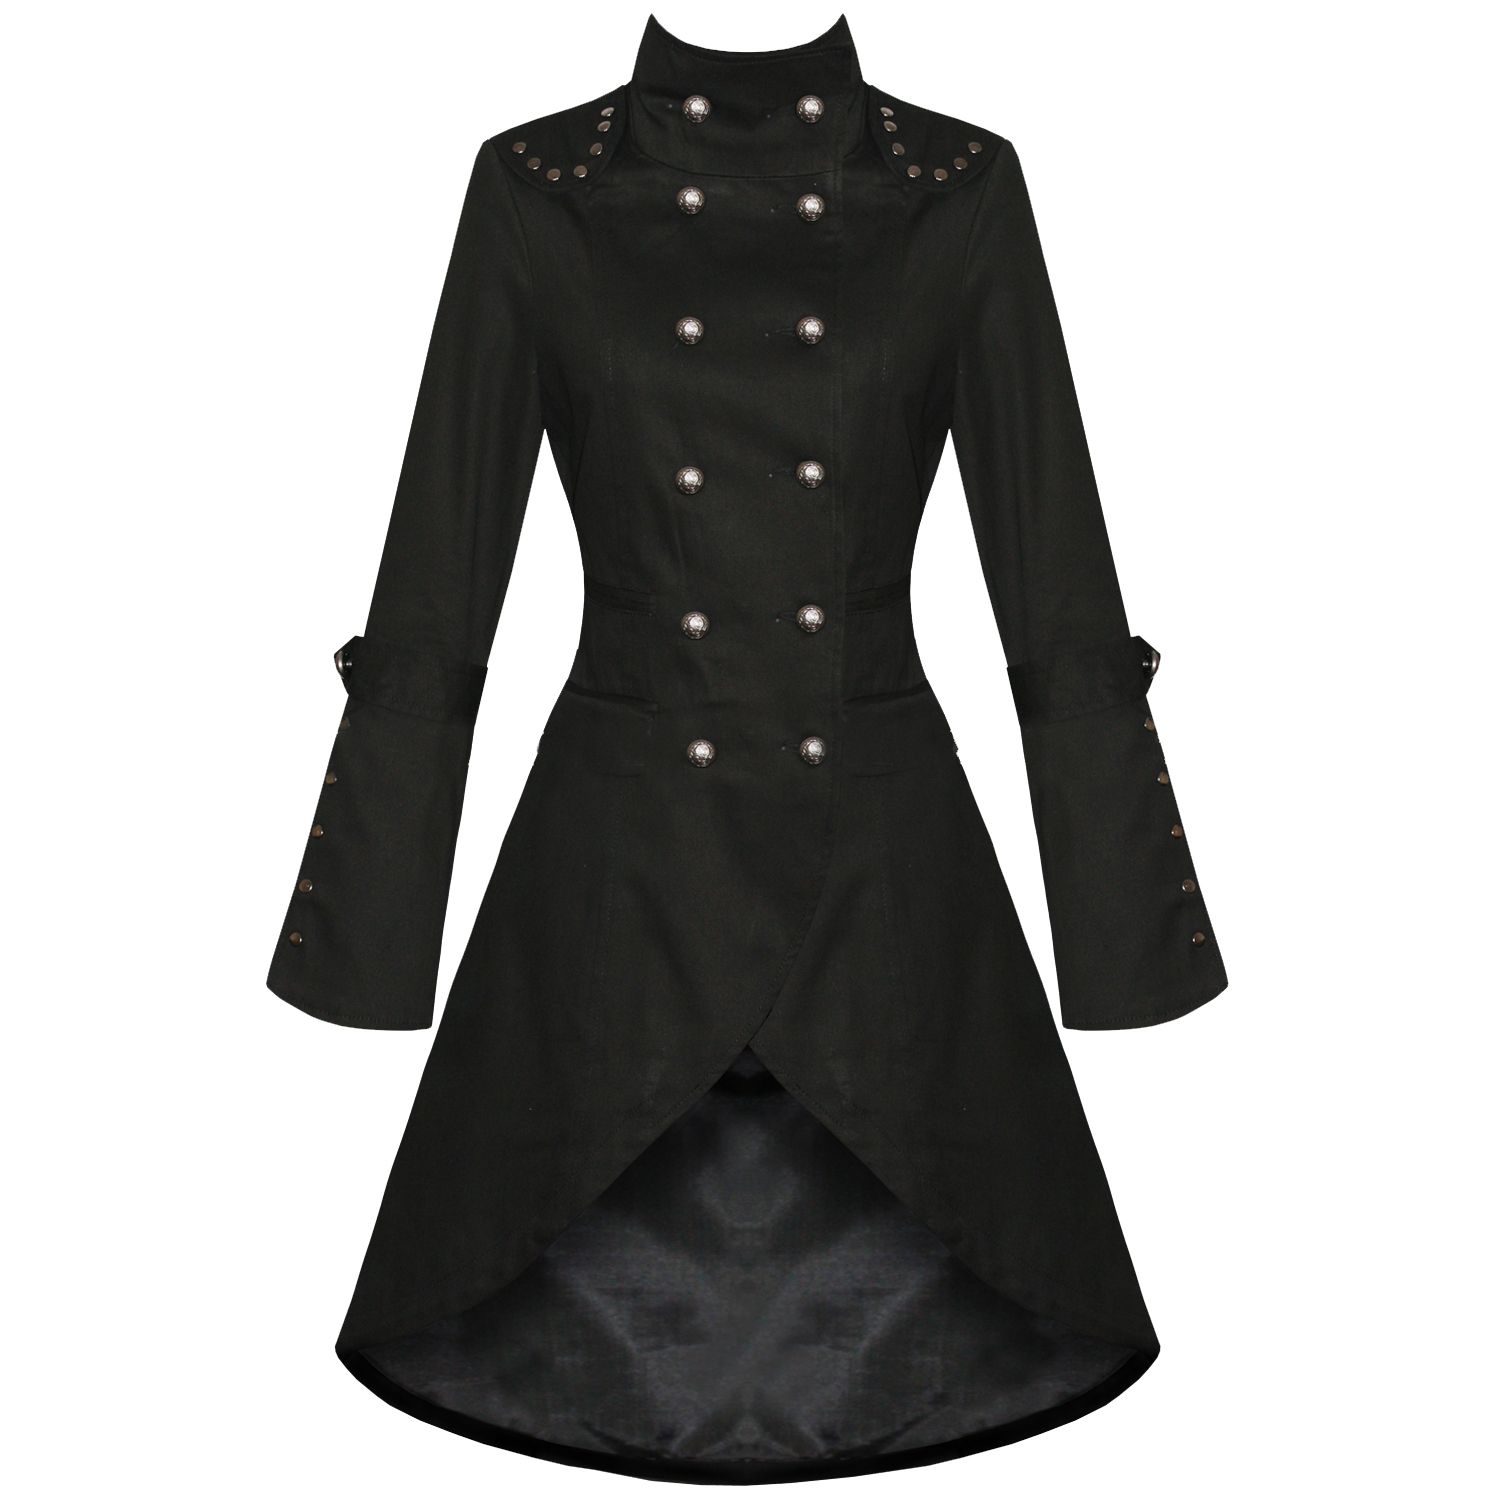 WOMENS LADIES NEW BLACK GOTHIC STEAMPUNK MILITARY COTTON COAT ...